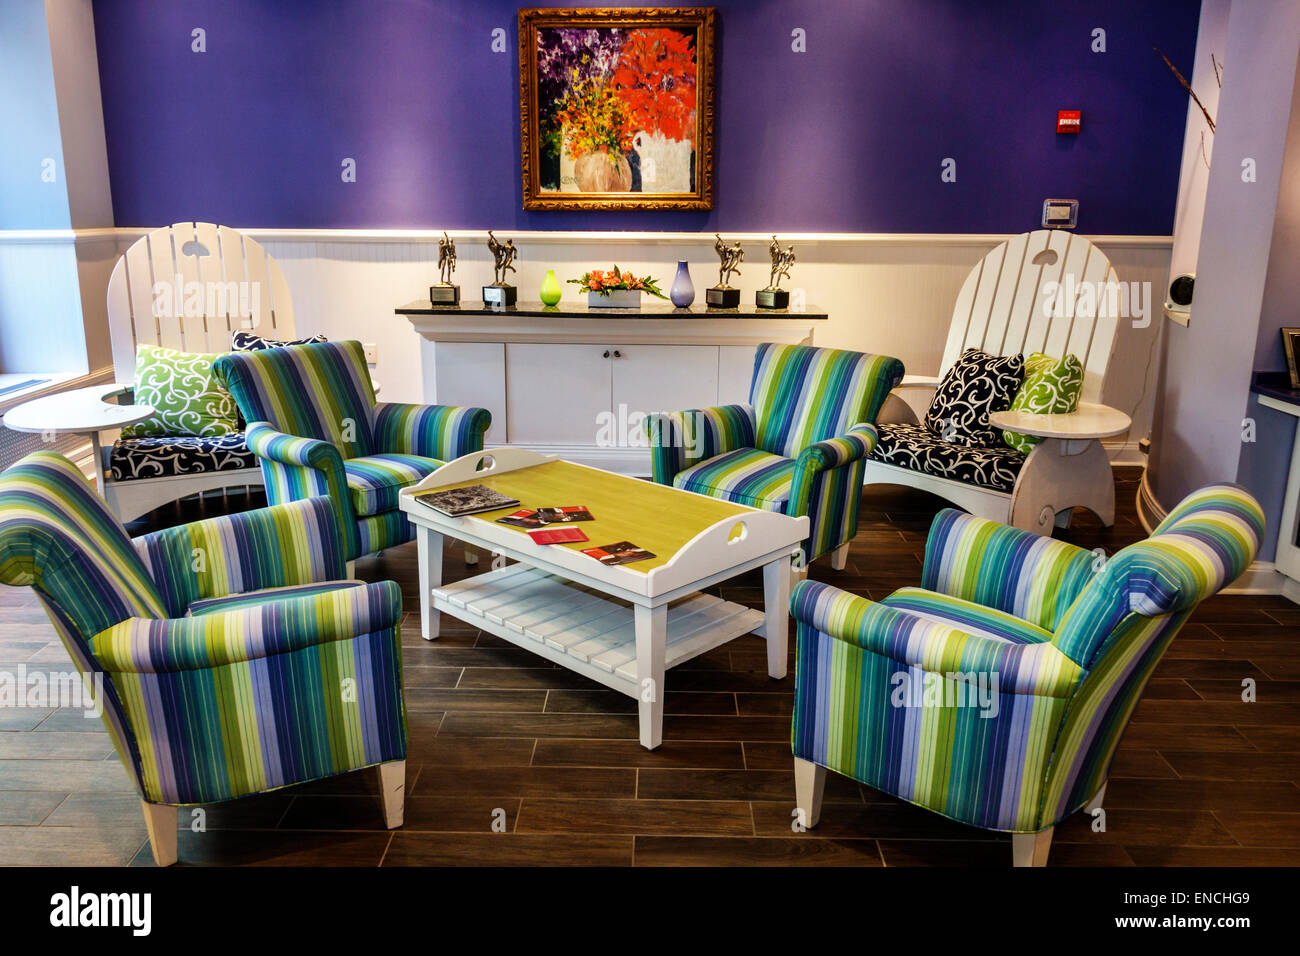 Chicago Illinois Gold Coast Historic District Hotel Indigo boutique hotel blue hue lobby seating chair stripe tile - Stock Image